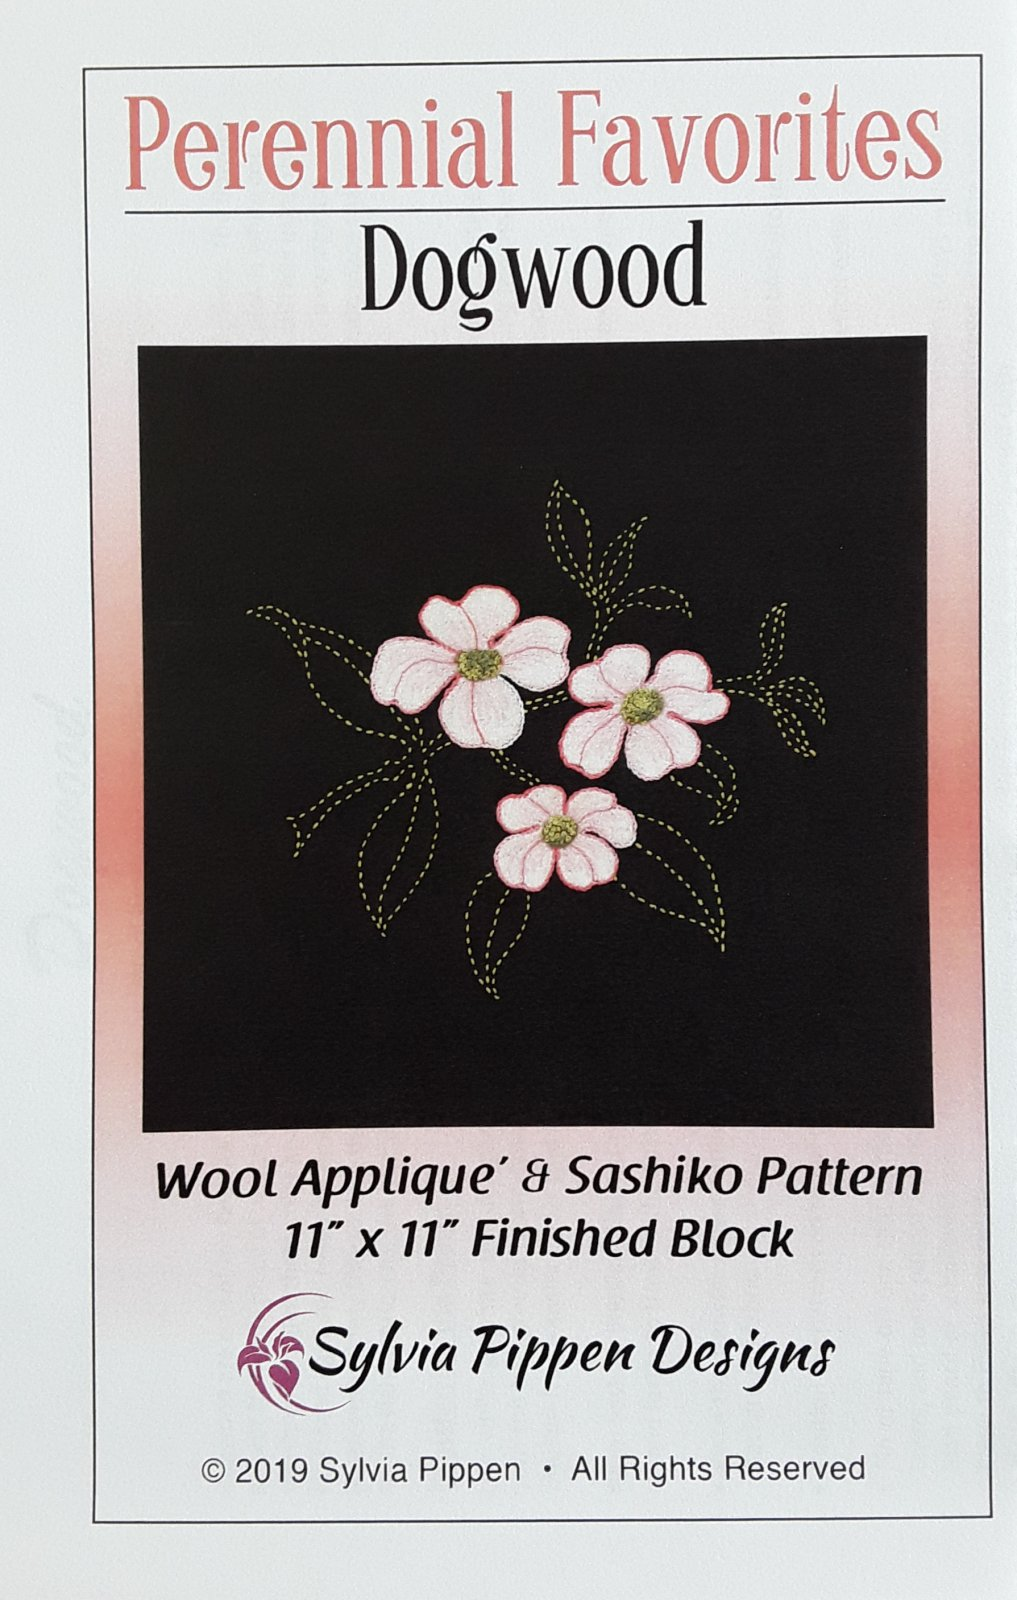 Perennial Favorites Dogwood Wool Applique & Sashiko Pattern